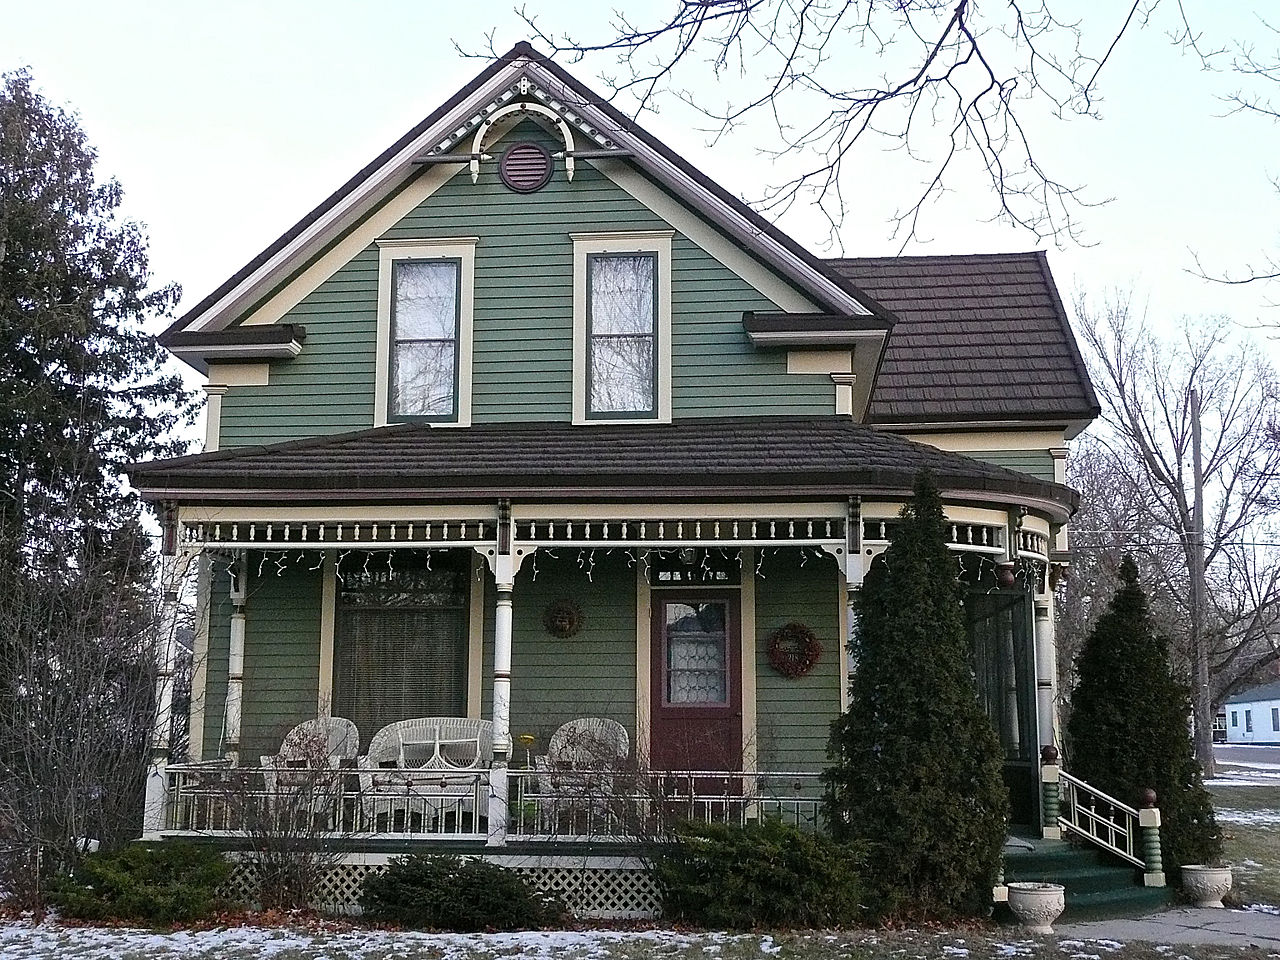 The Albert May House was built in 1898. Its namesake, Albert May, was Stevensville's first mayor.